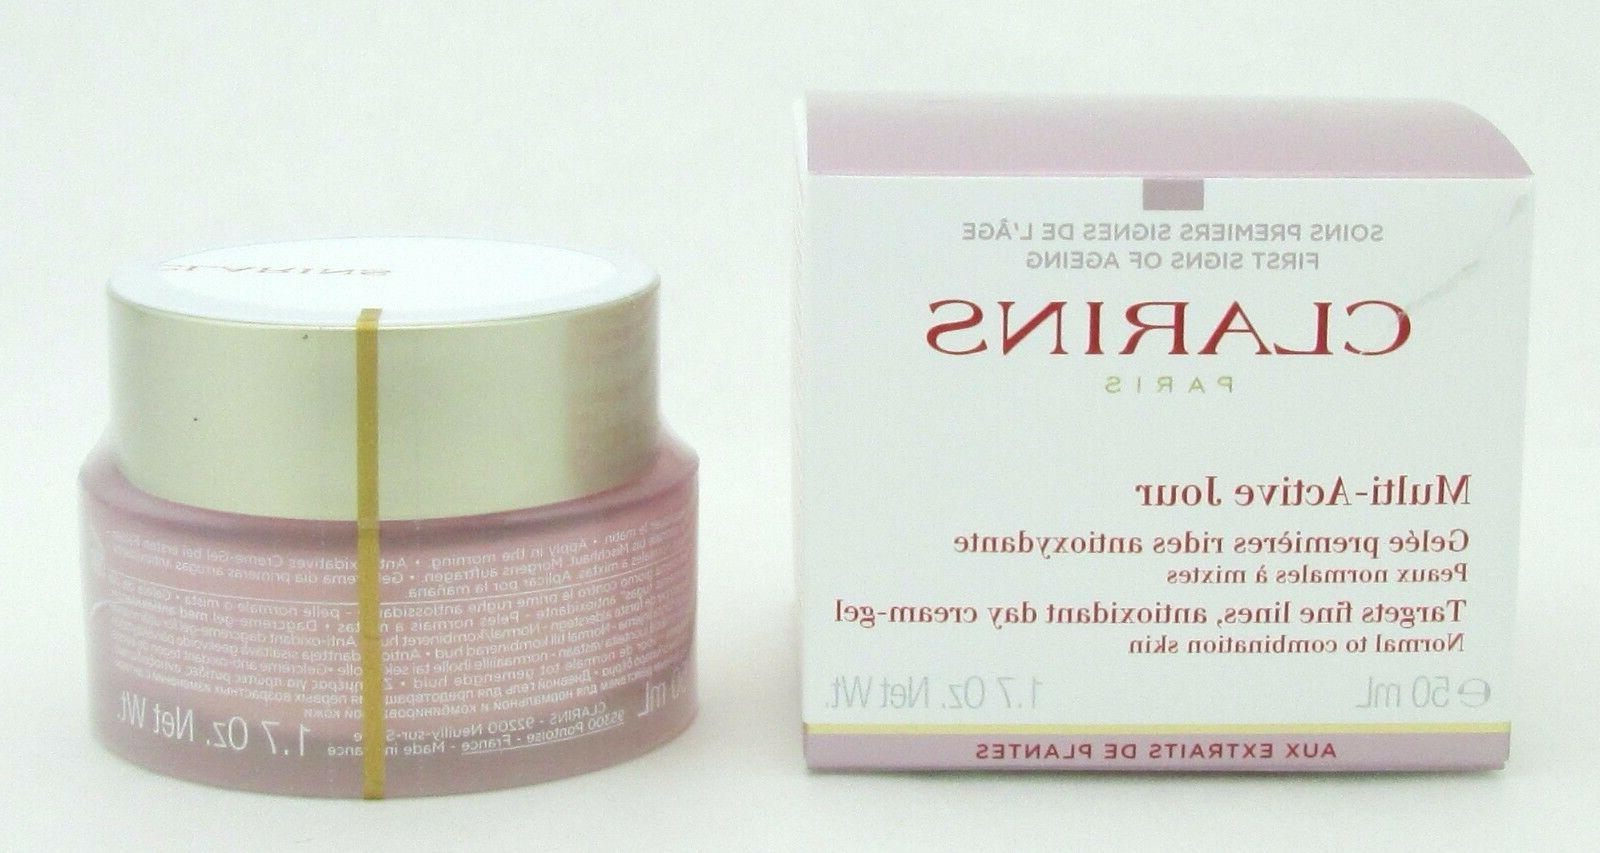 Clarins Recovery Cream to